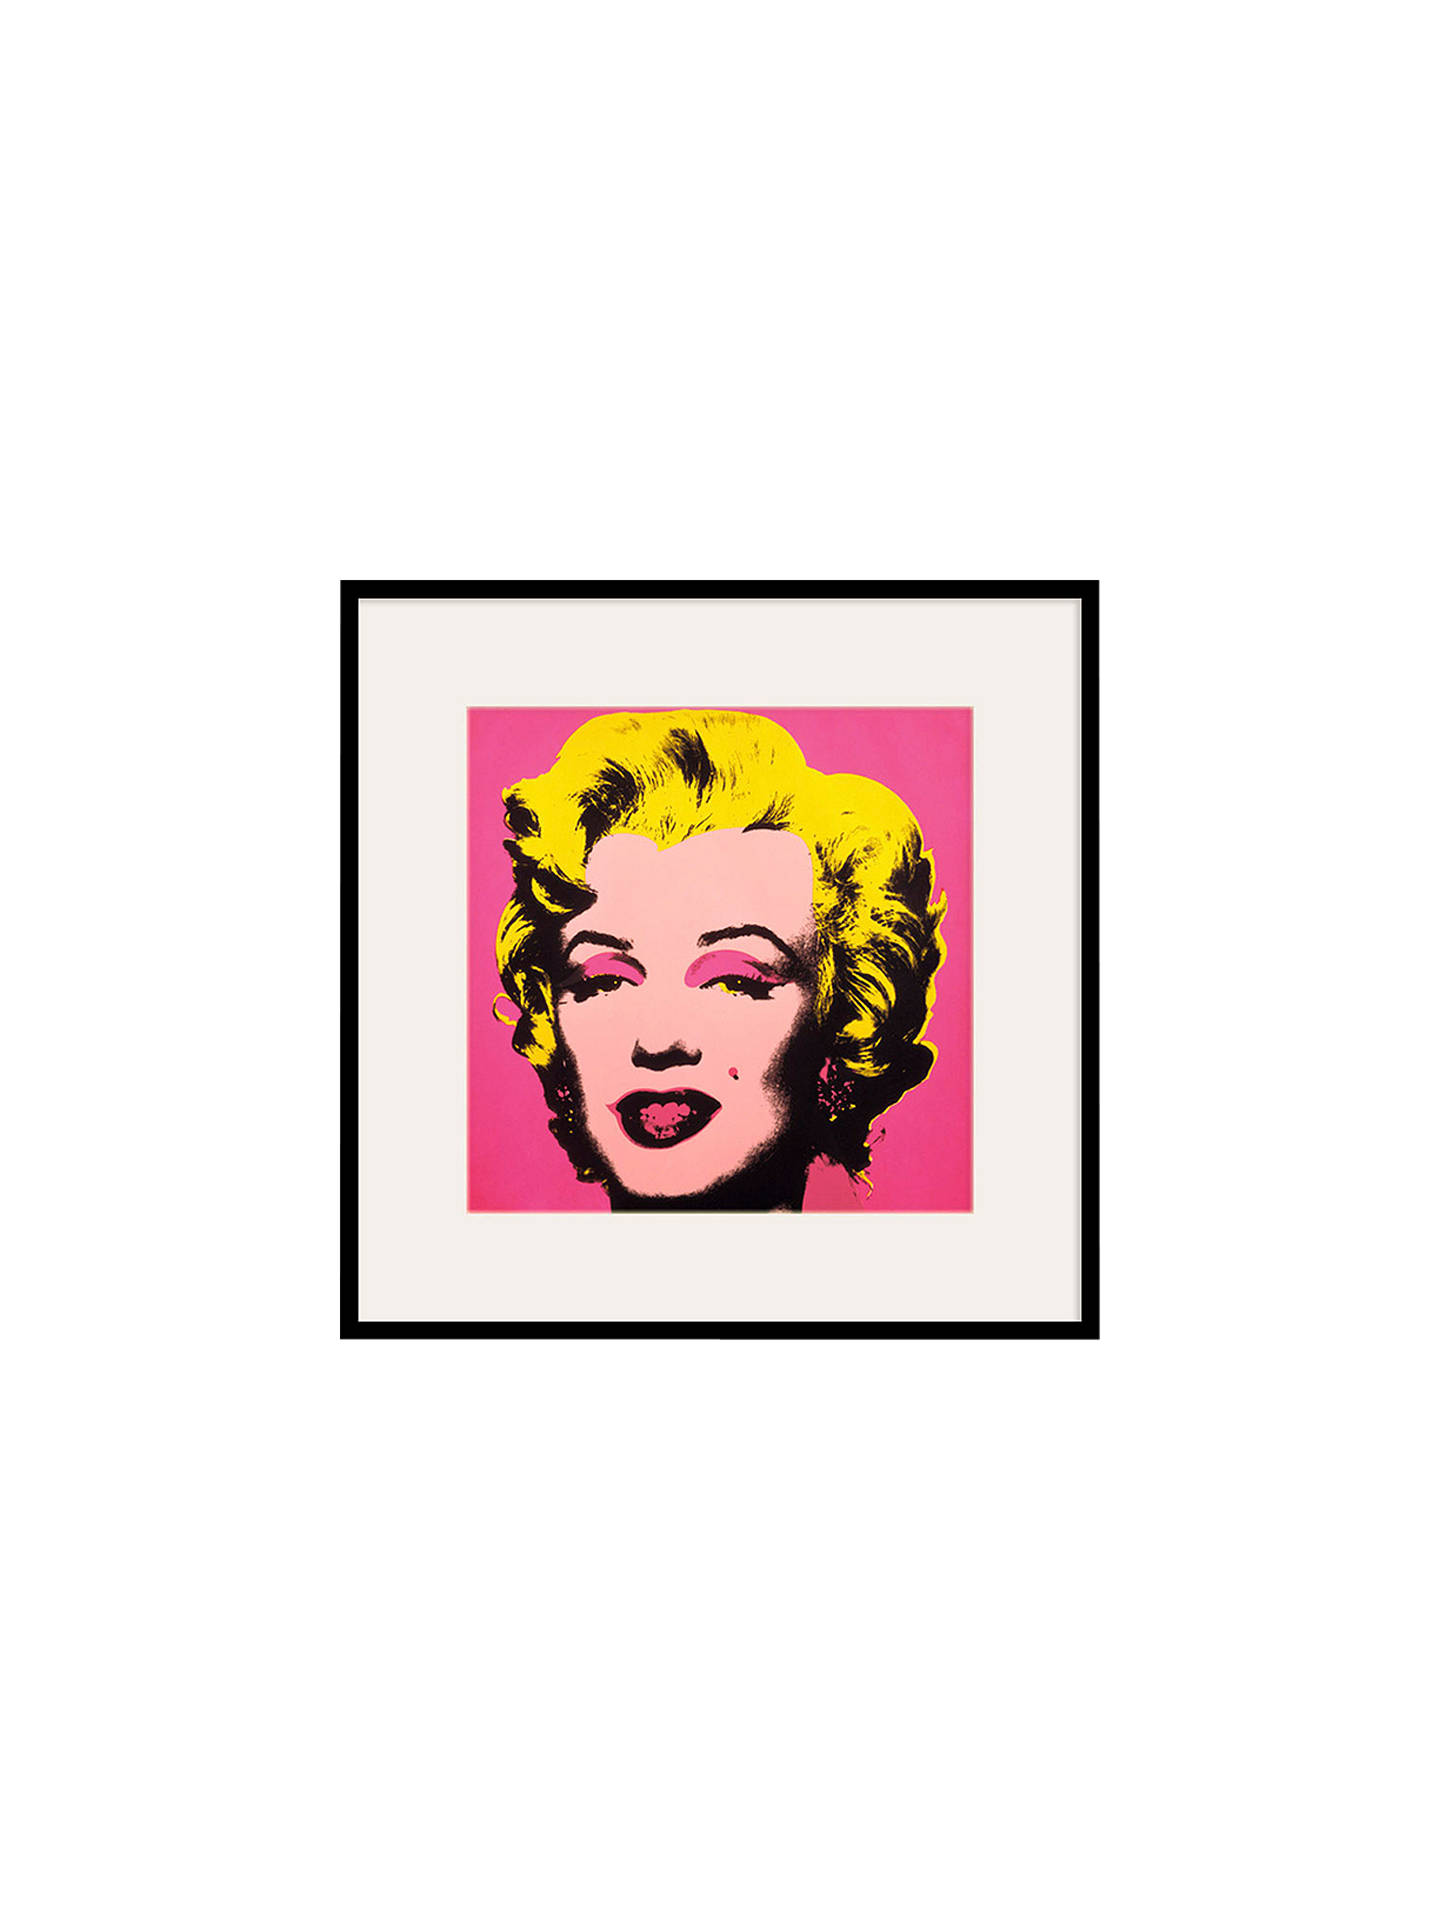 BuyAndy Warhol - From Marilyn Pink 1967, 60 x 60cm Online at johnlewis.com